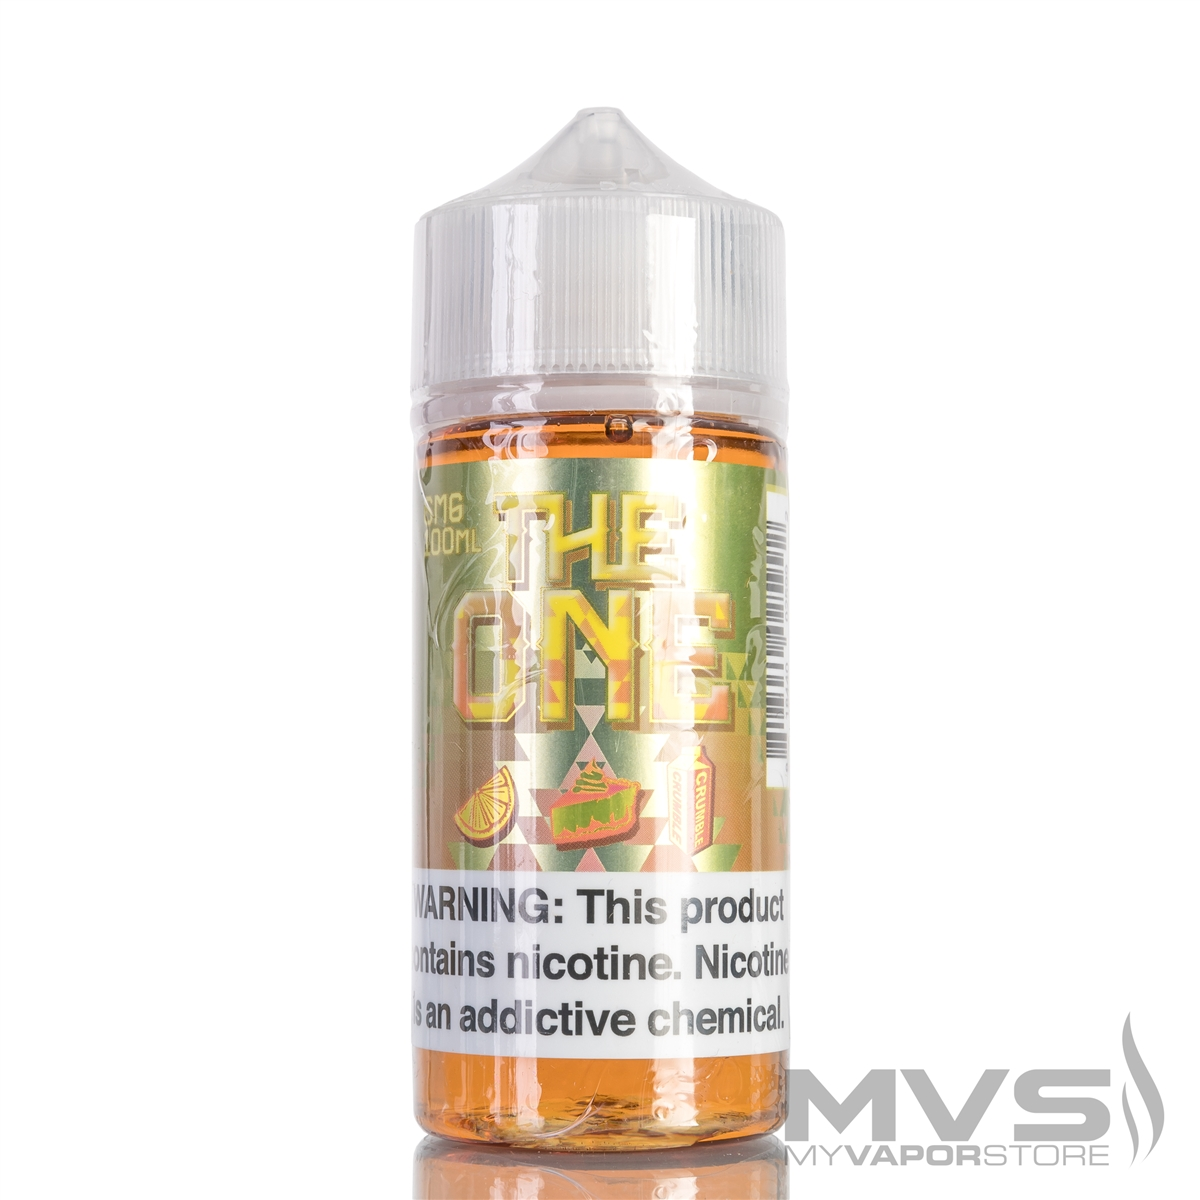 Lemon Crumble Cake by The One - 100ml